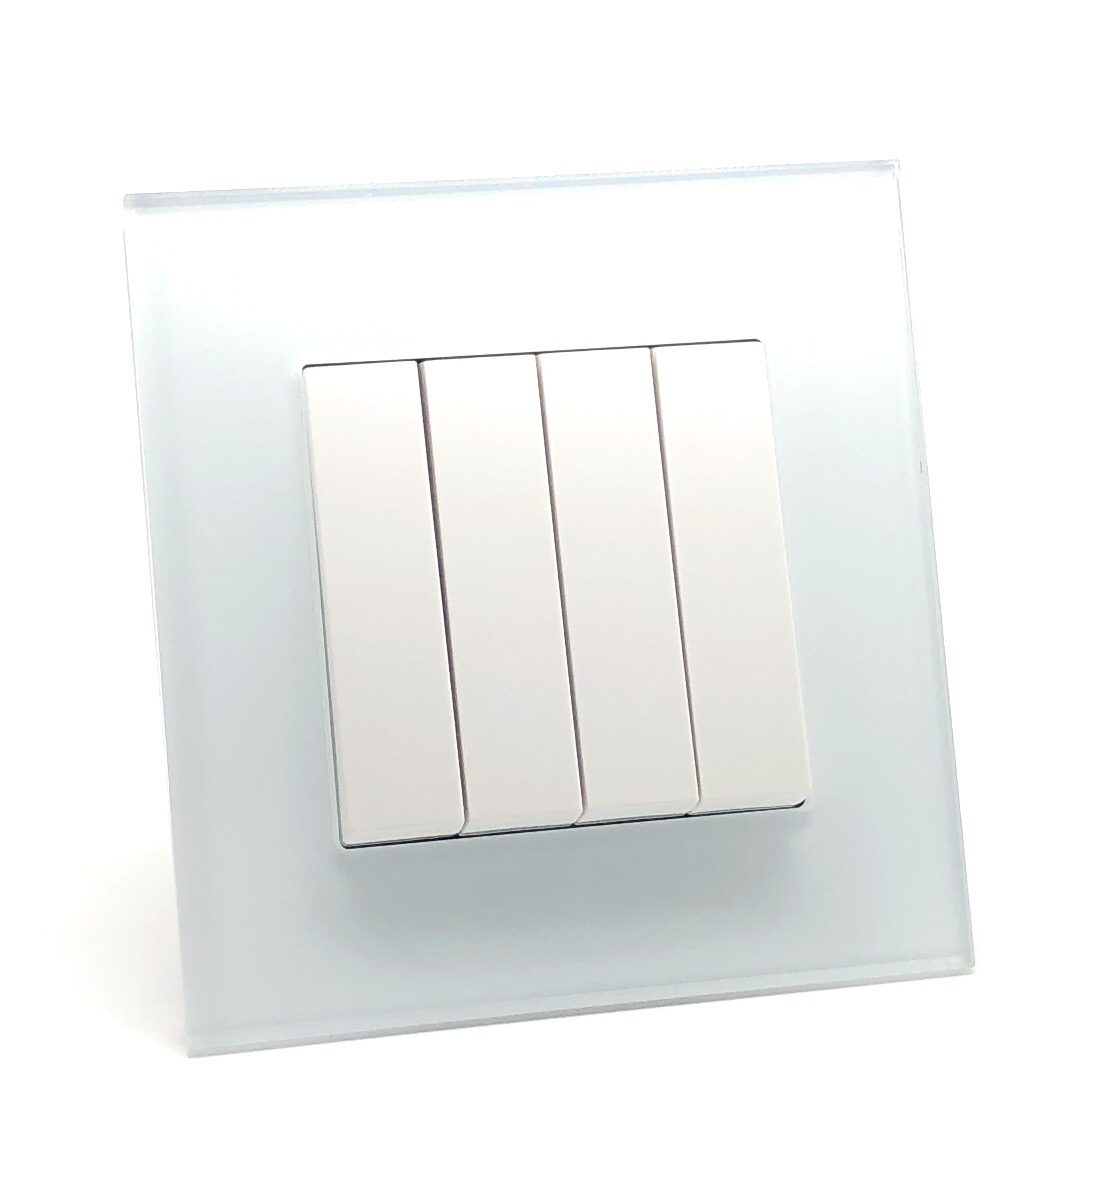 illucio 4 Gang 1 or 2 Way 10 Amp Rocker OnOff Light Switch White